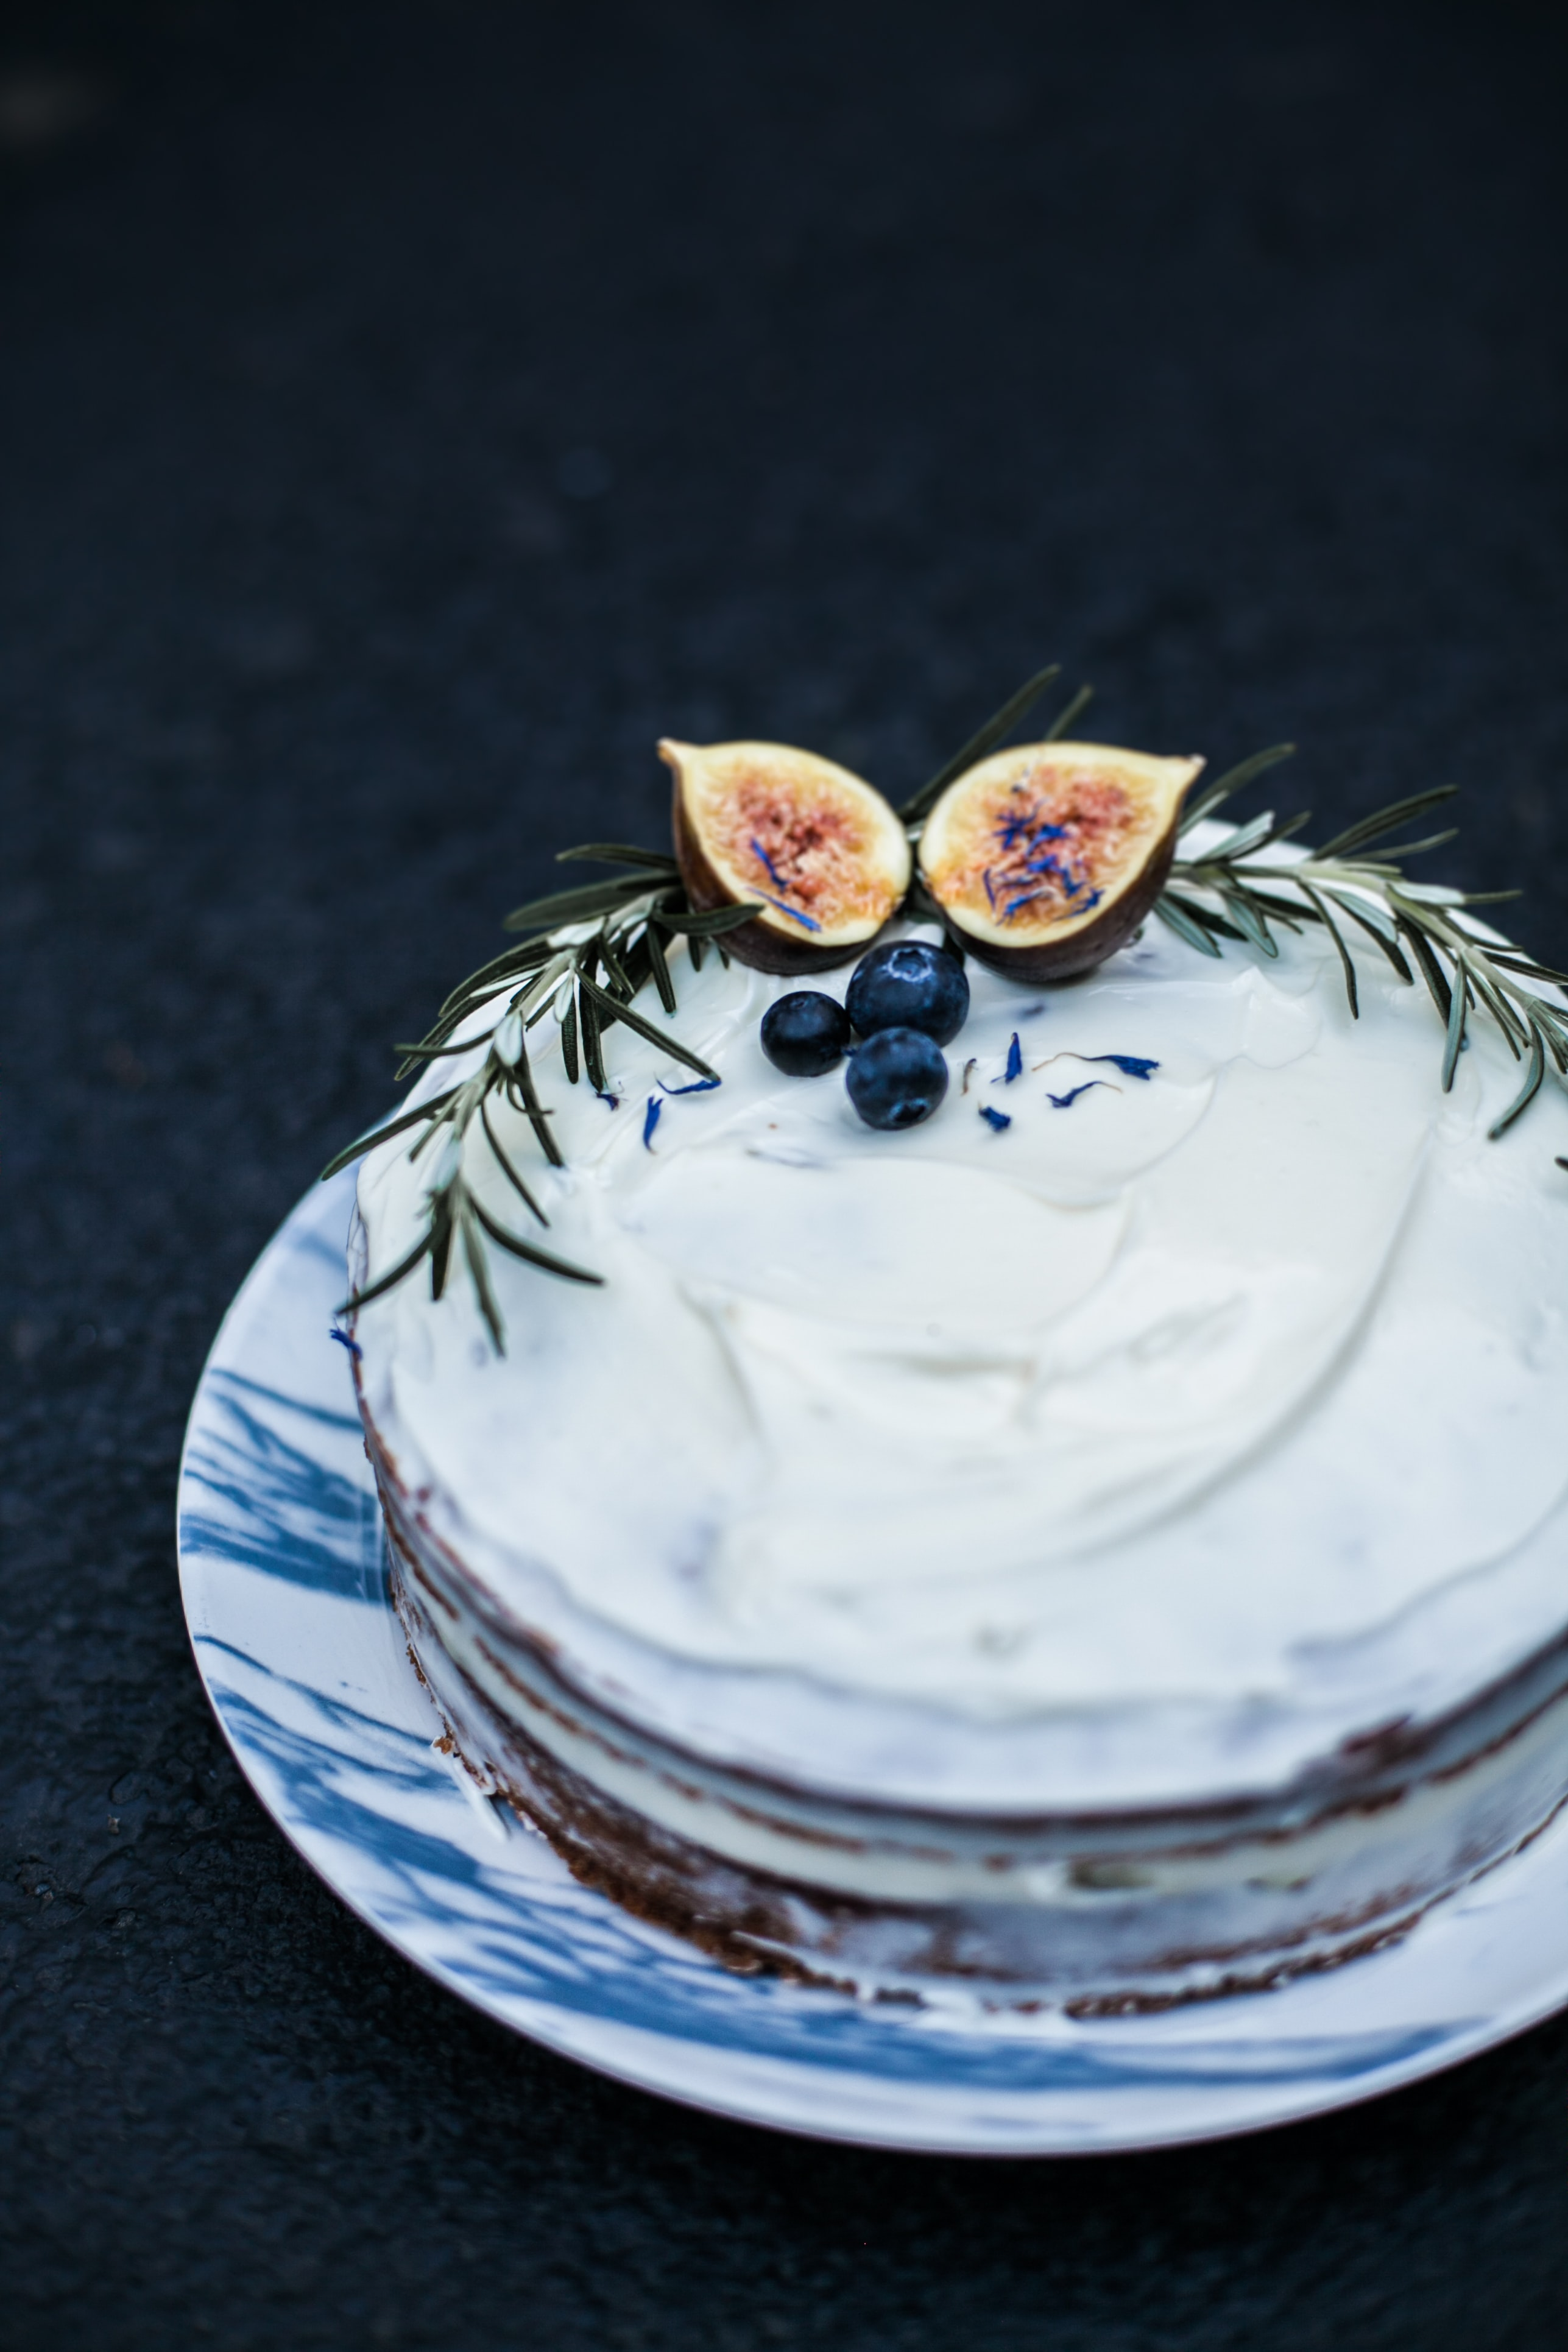 white and brown cake on top of white and blue plate